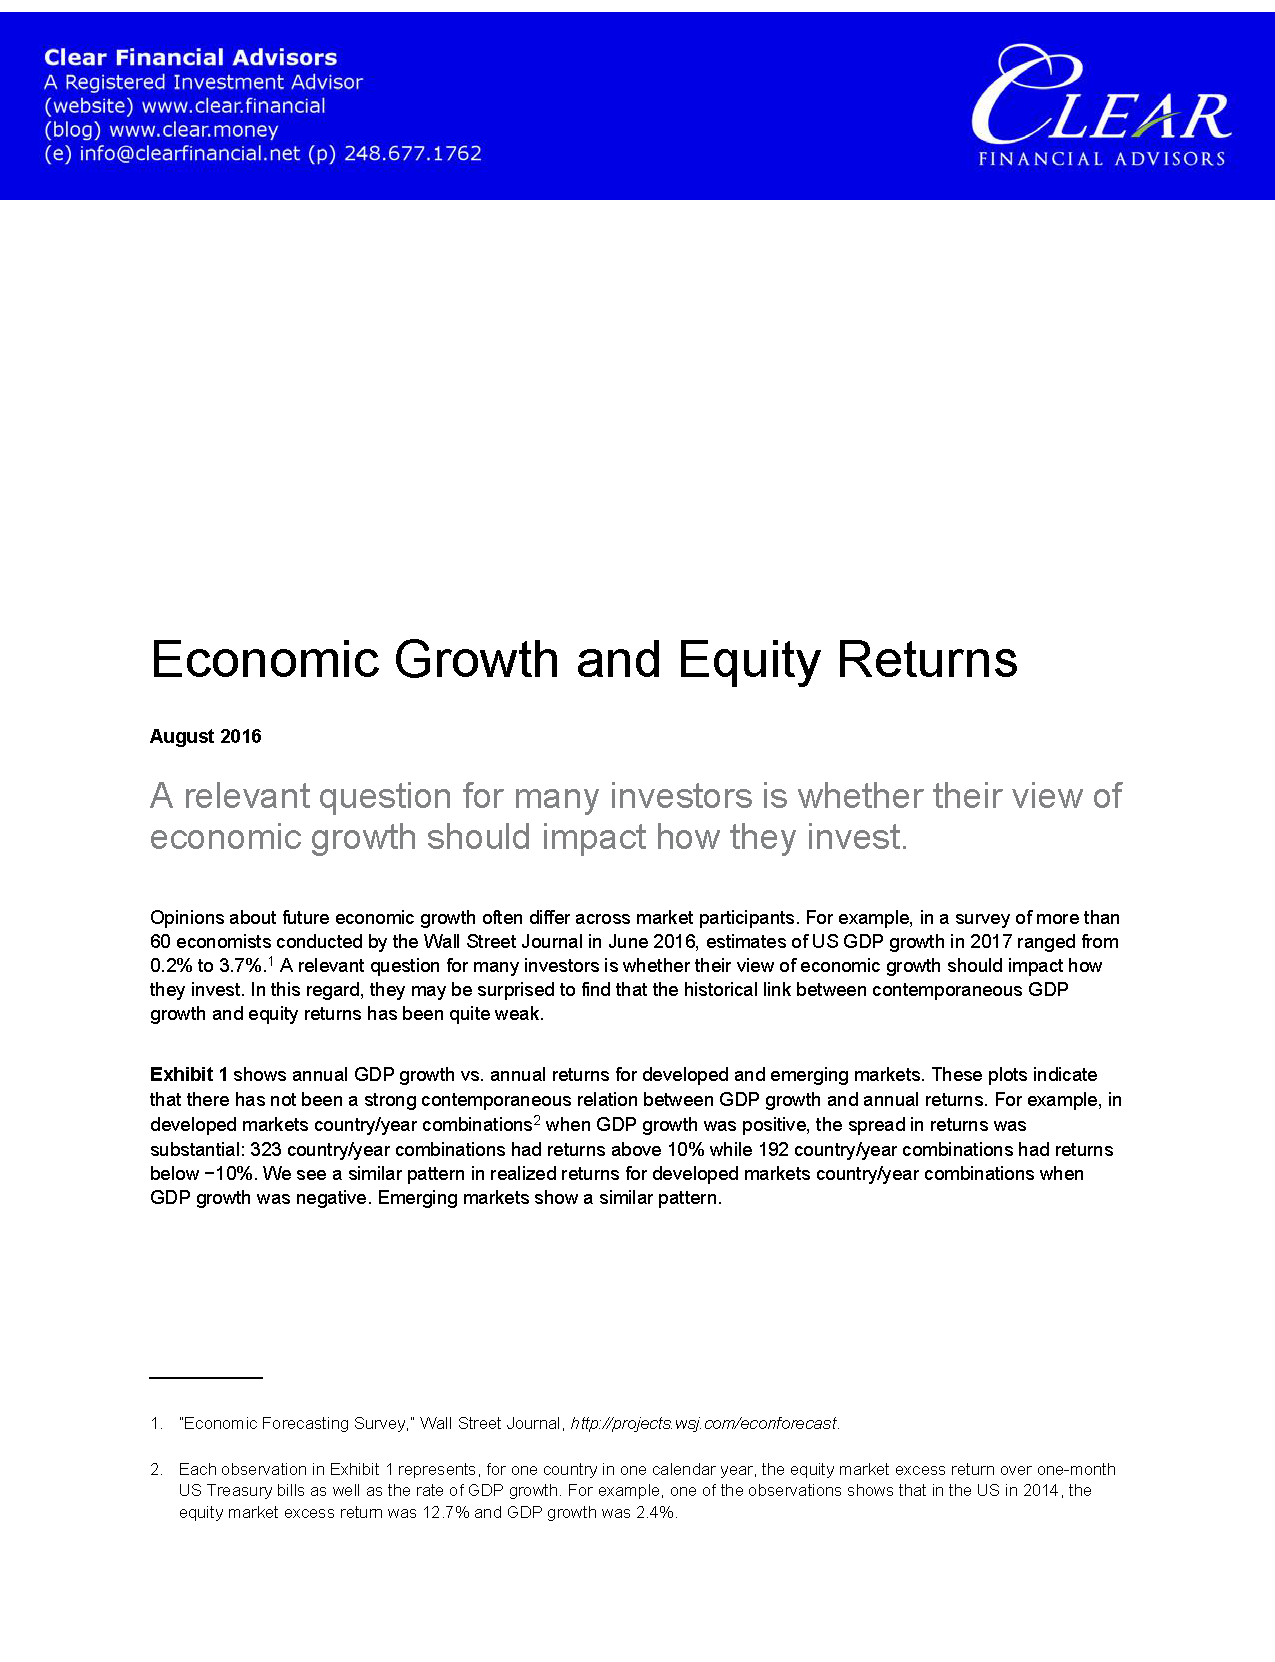 Clear Financial - Economic Growth and Equity Returns_Page_1